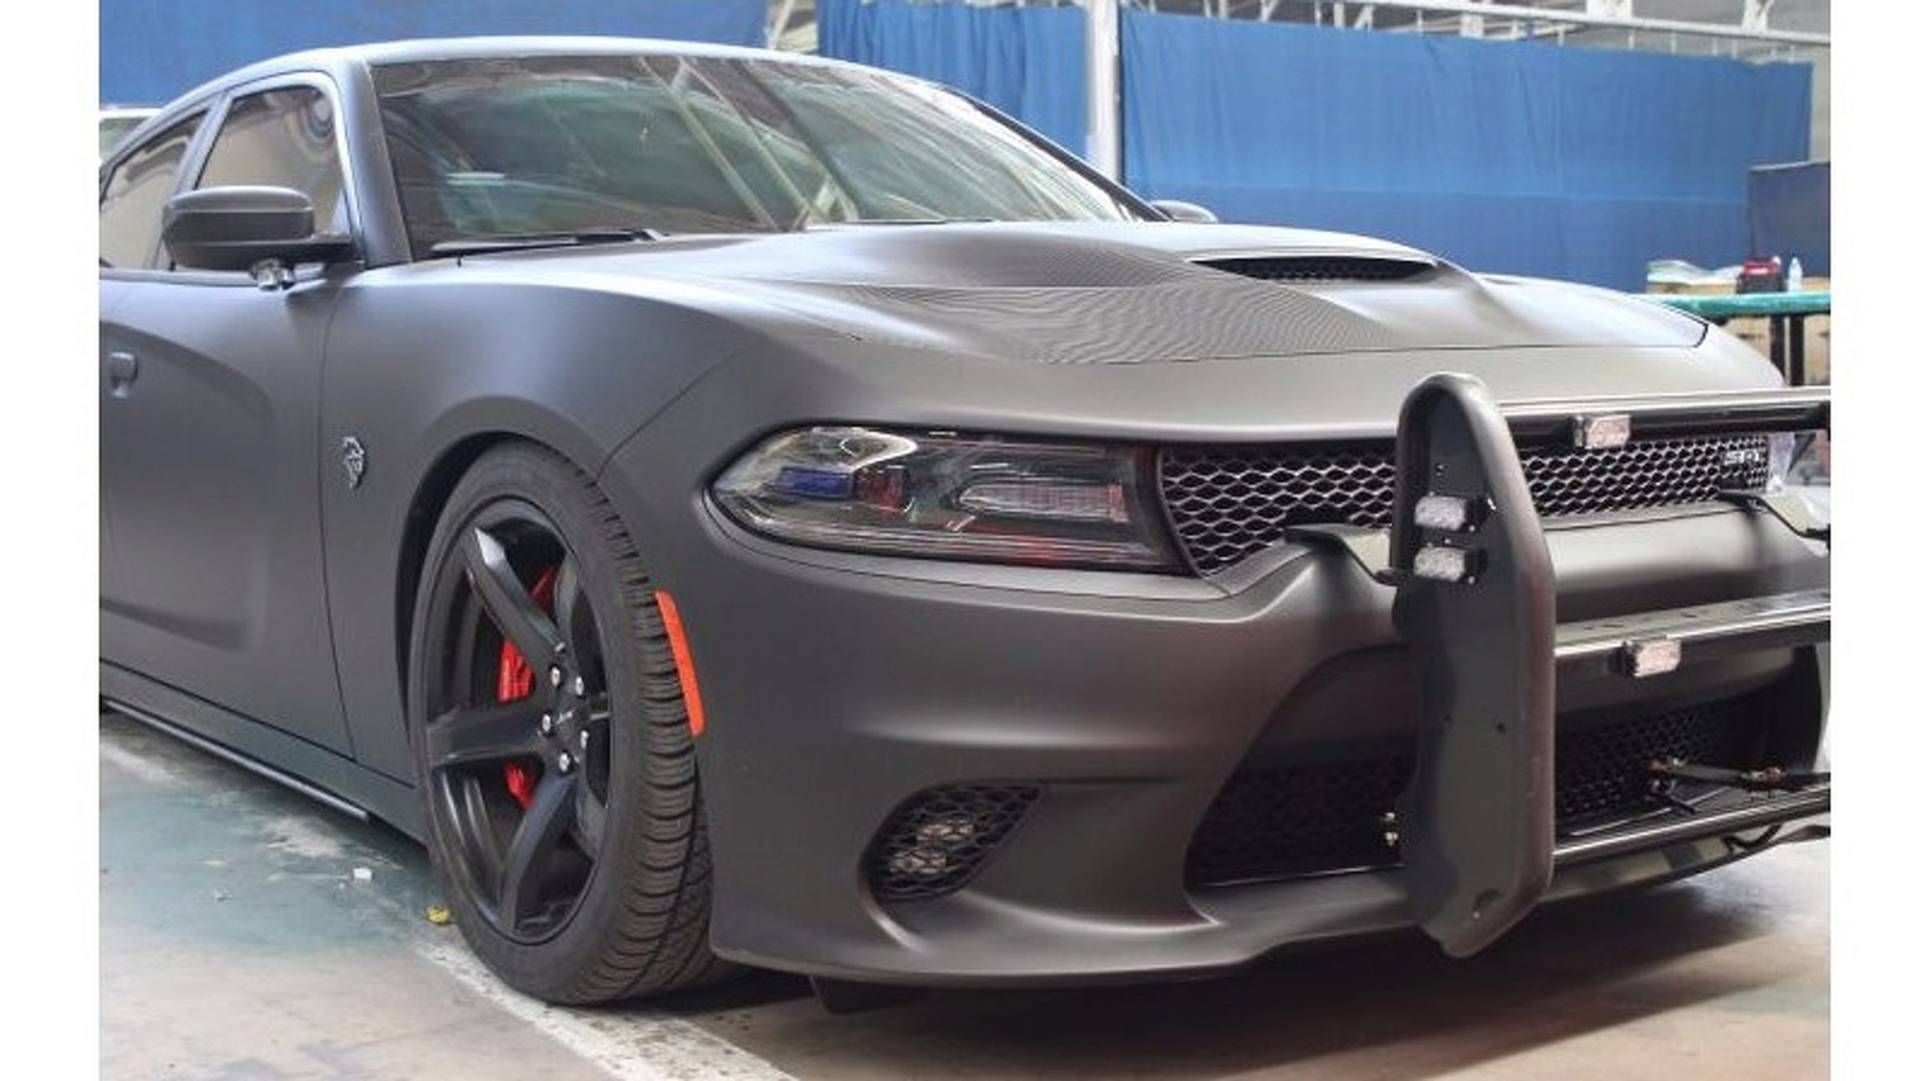 Pin By Miyaanicolee On Dream Car In 2020 Dodge Charger Hellcat Charger Srt Dodge Charger